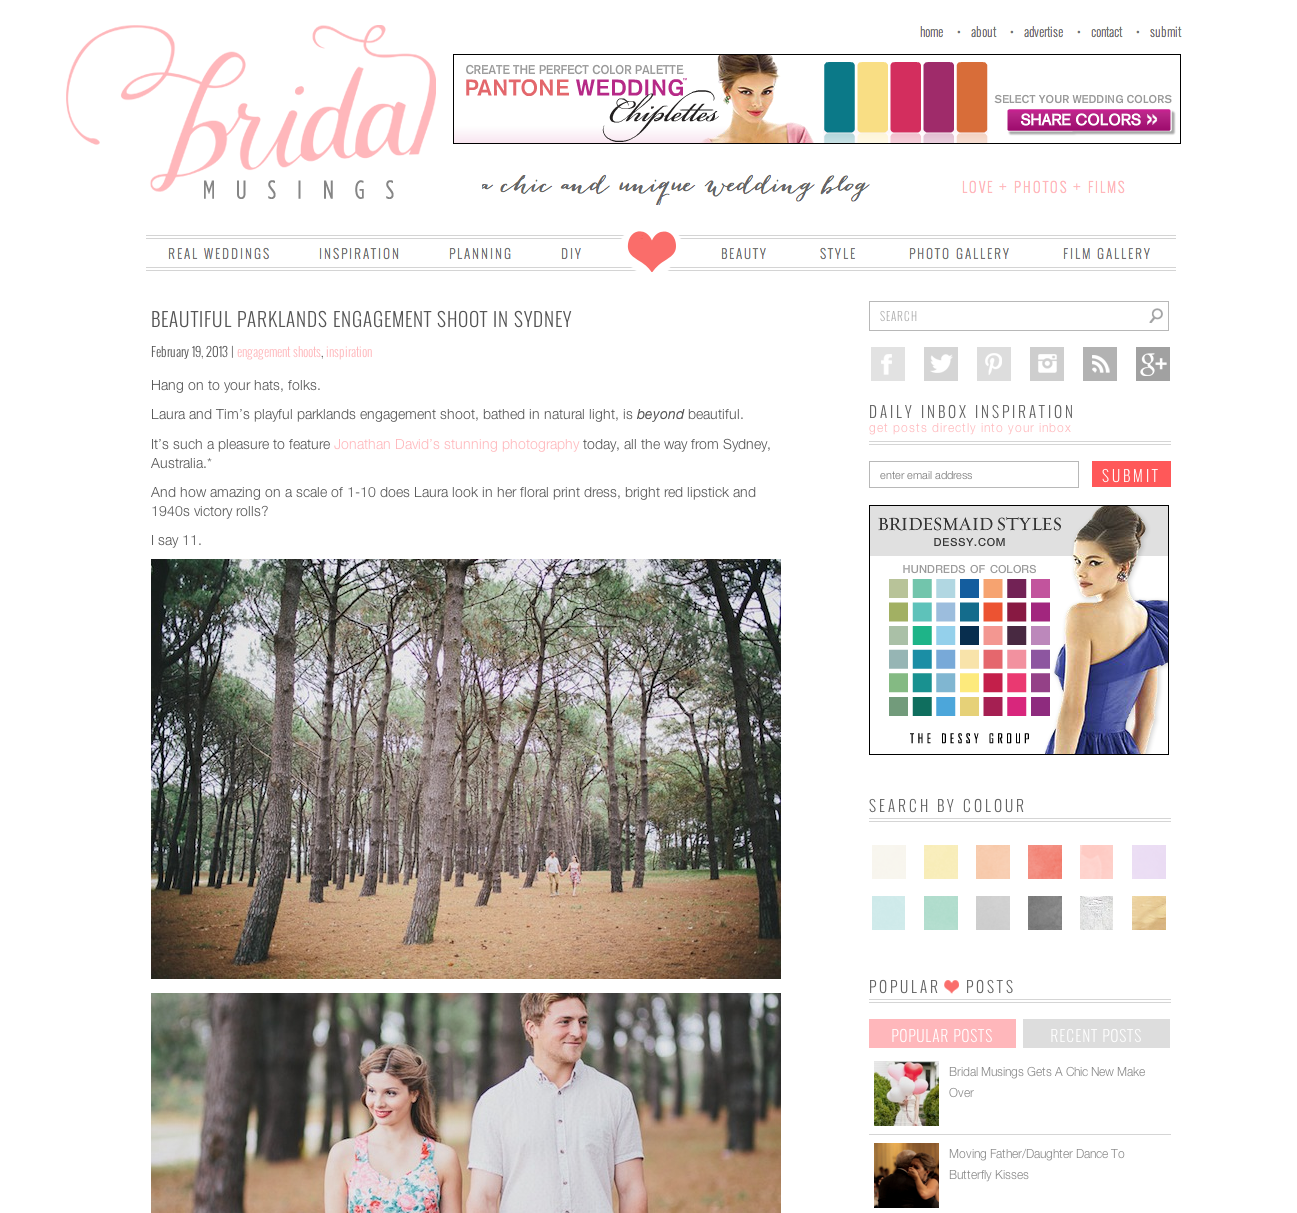 Bridal Musings Engagement Photography Feature